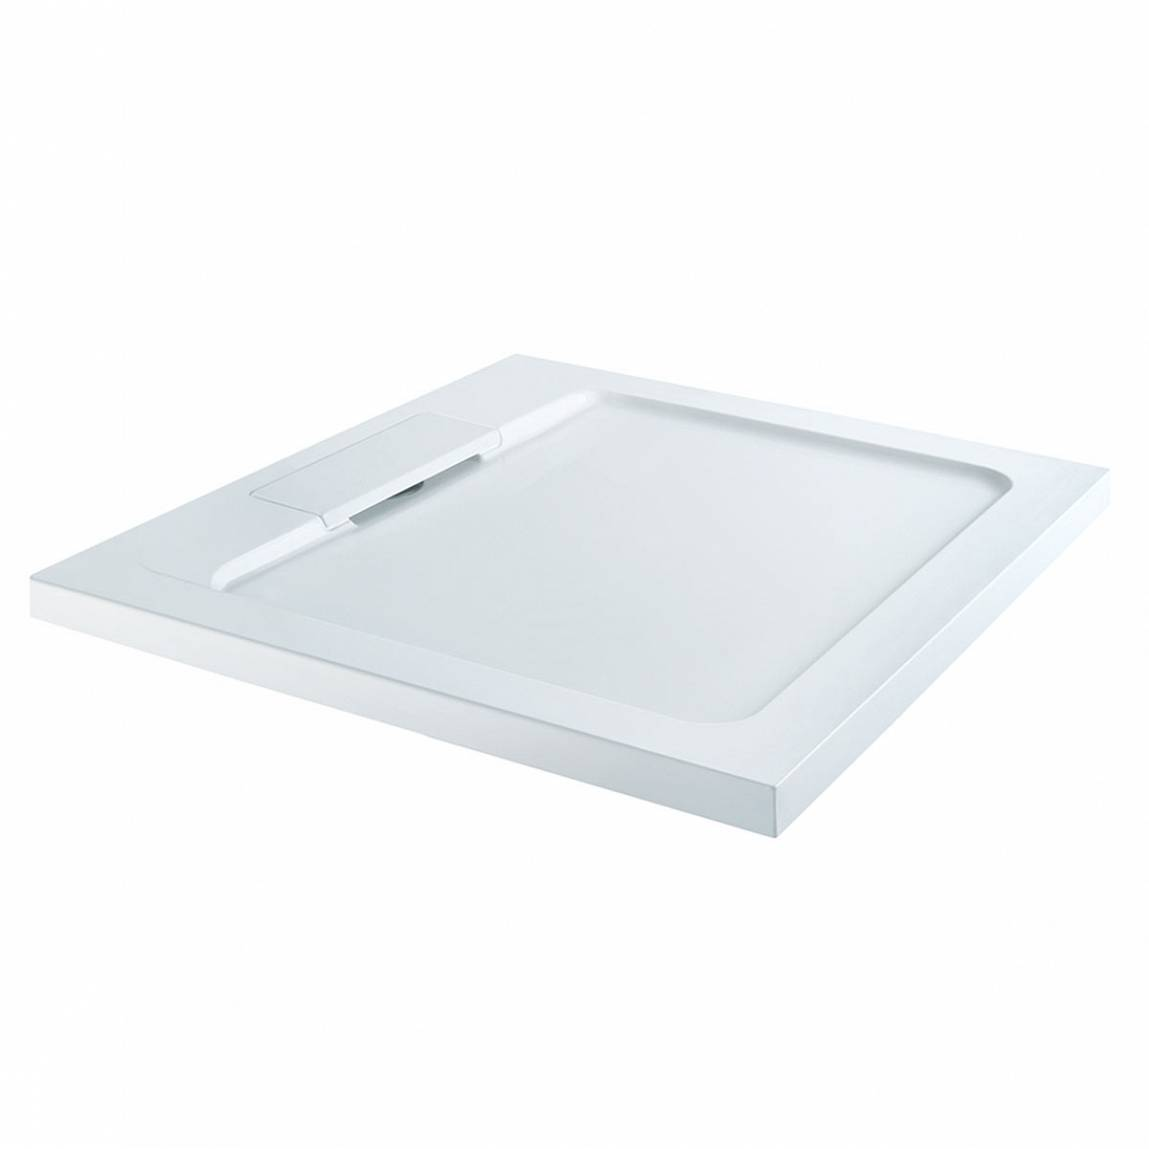 Image of Designer Square Stone Shower Tray 800 x 800